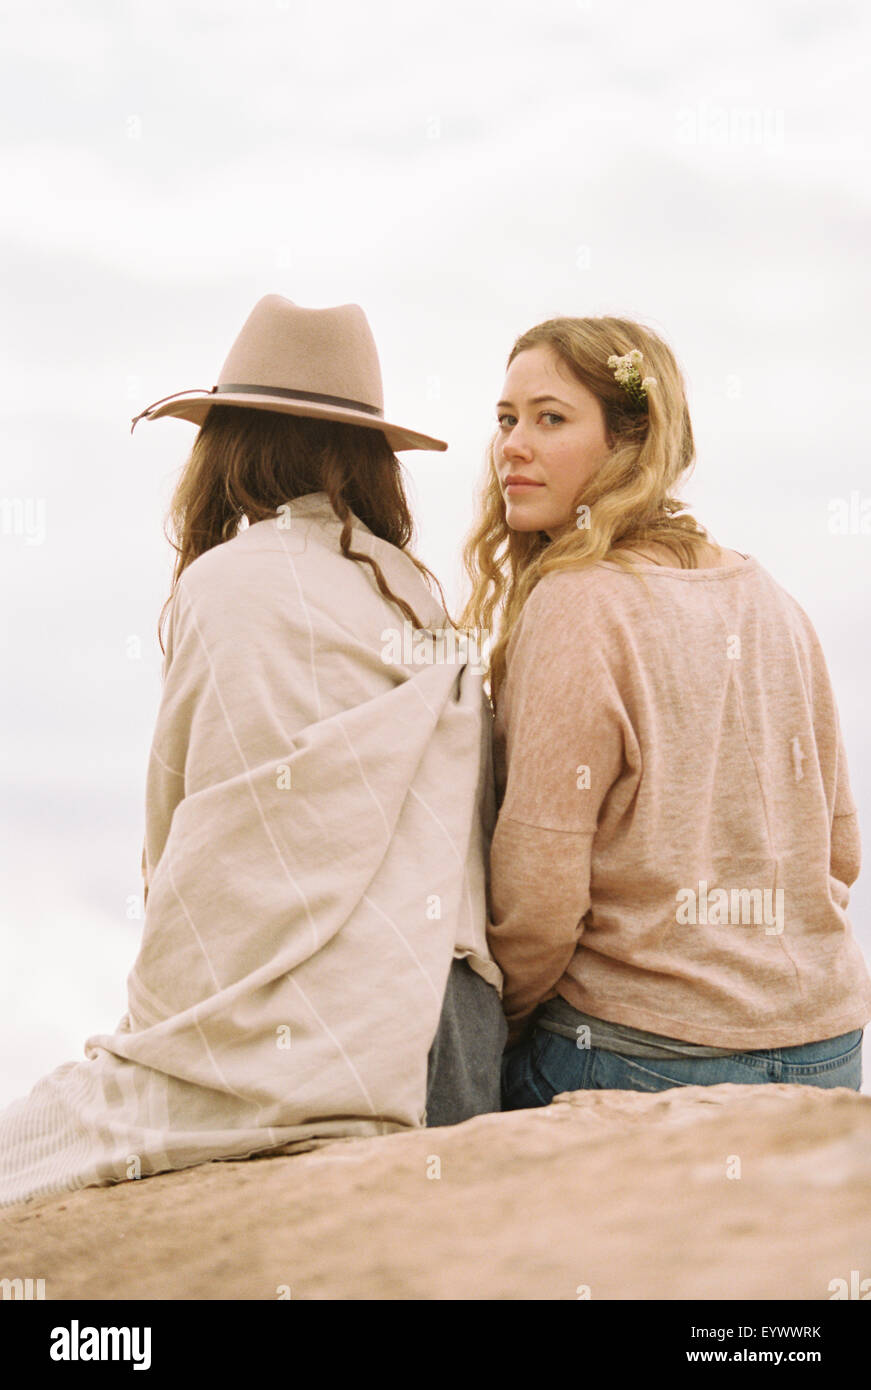 Two women on a rock one looking over shoulder - Stock Image